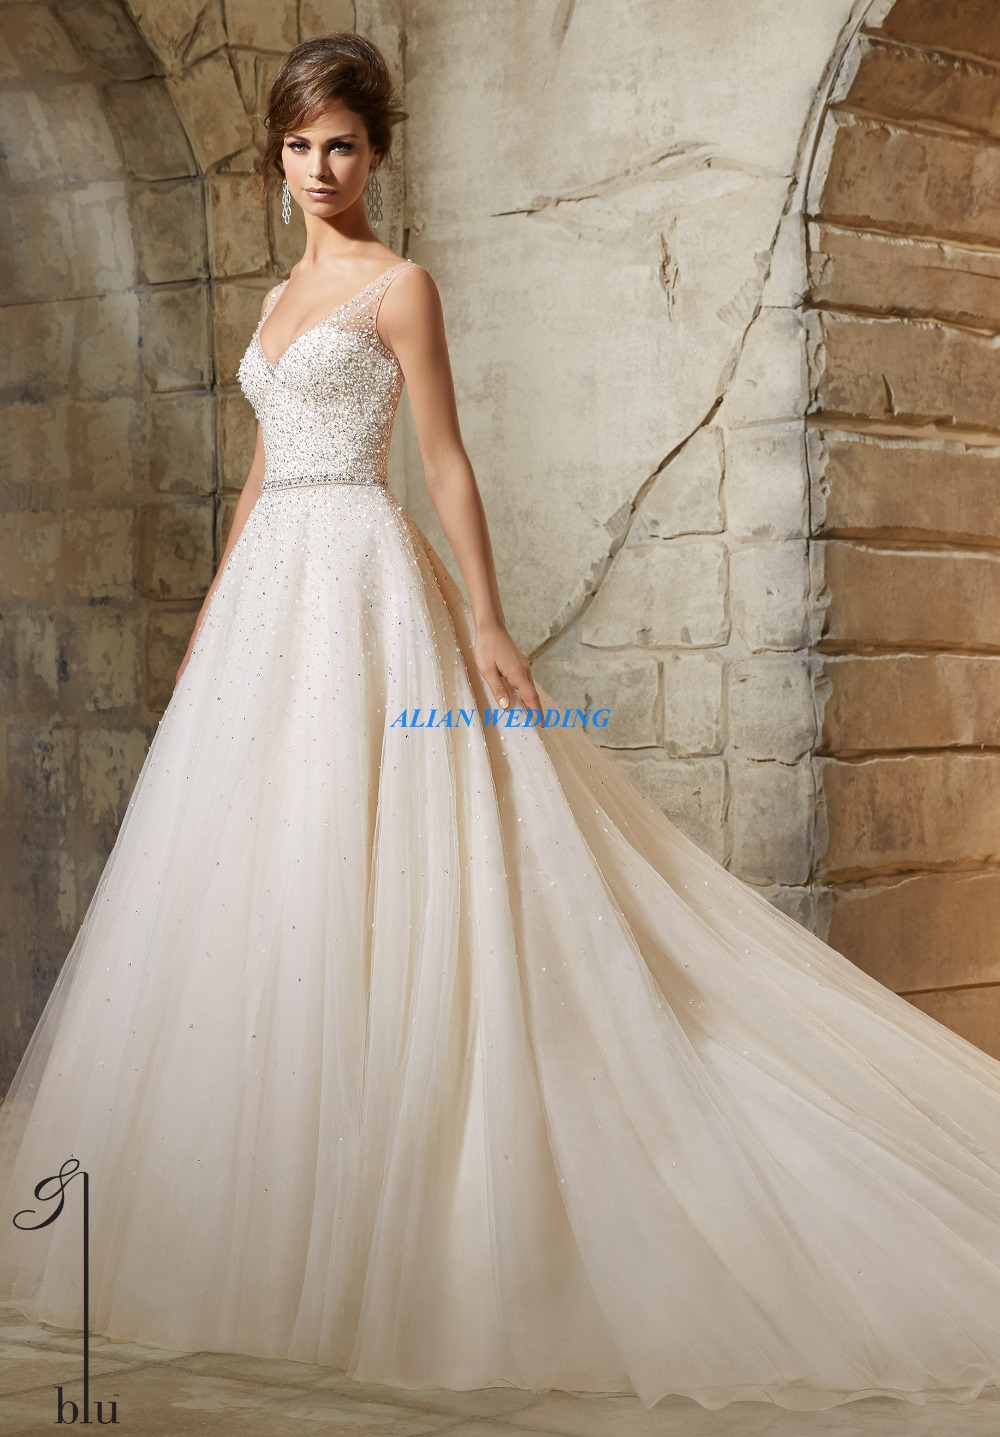 Luxury Peacock Beaded Wedding Dresses Princess Vestidos De Novia Sexy V Neck Bridal Gowns Low Back Custom White Organza NW3552 In From